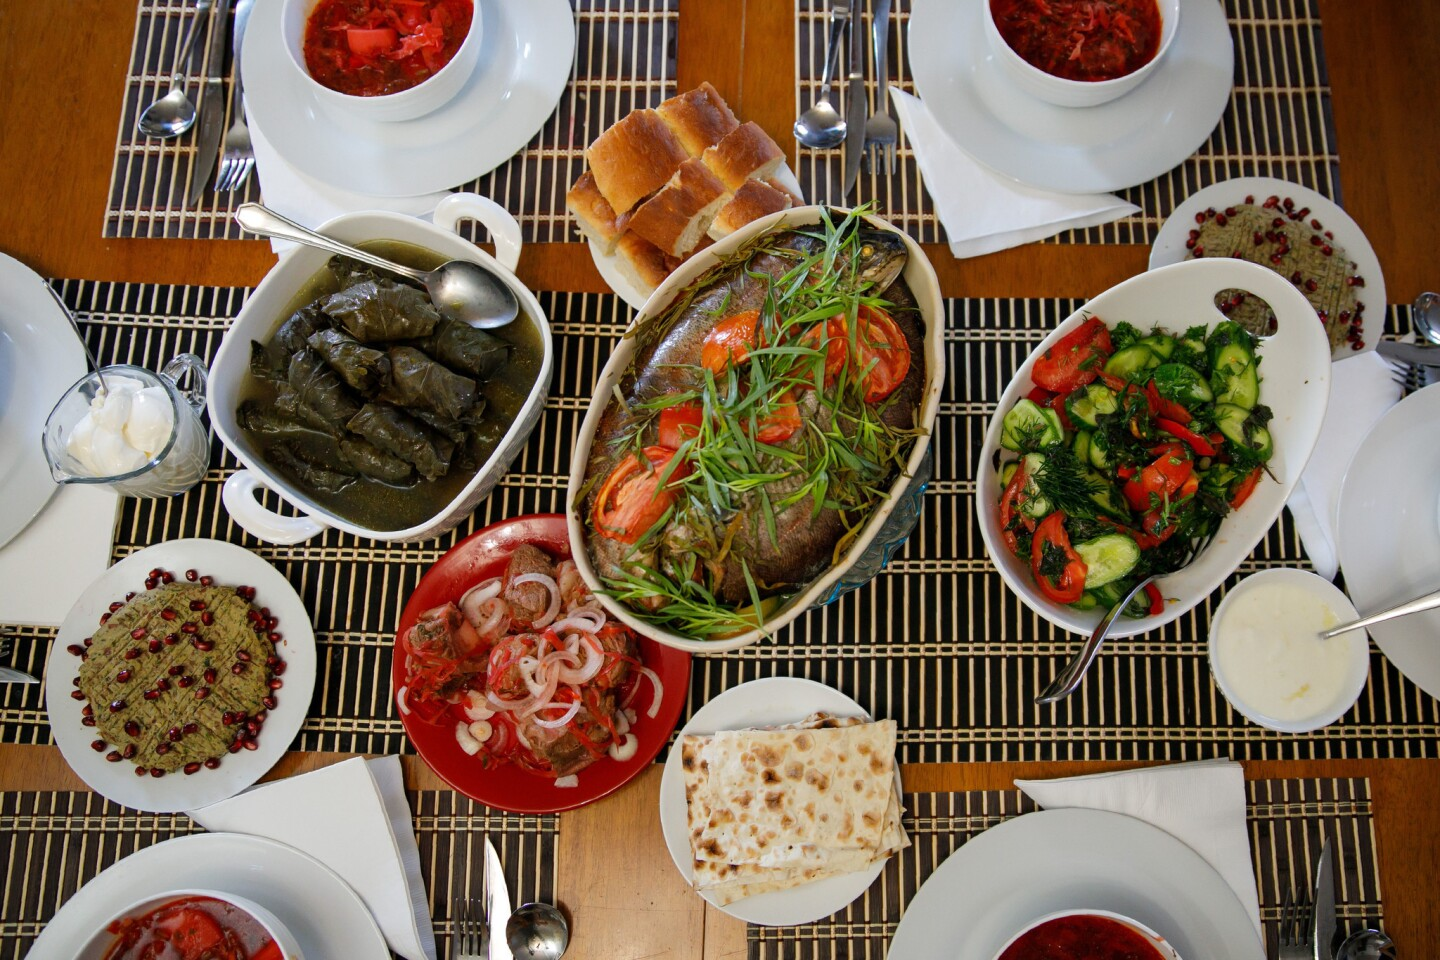 A meal prepared in Elmira Avetian's Glendale home illustrates the League of Kitchens' mission: teaching regional specialties via immigrant cooks from all over the world.